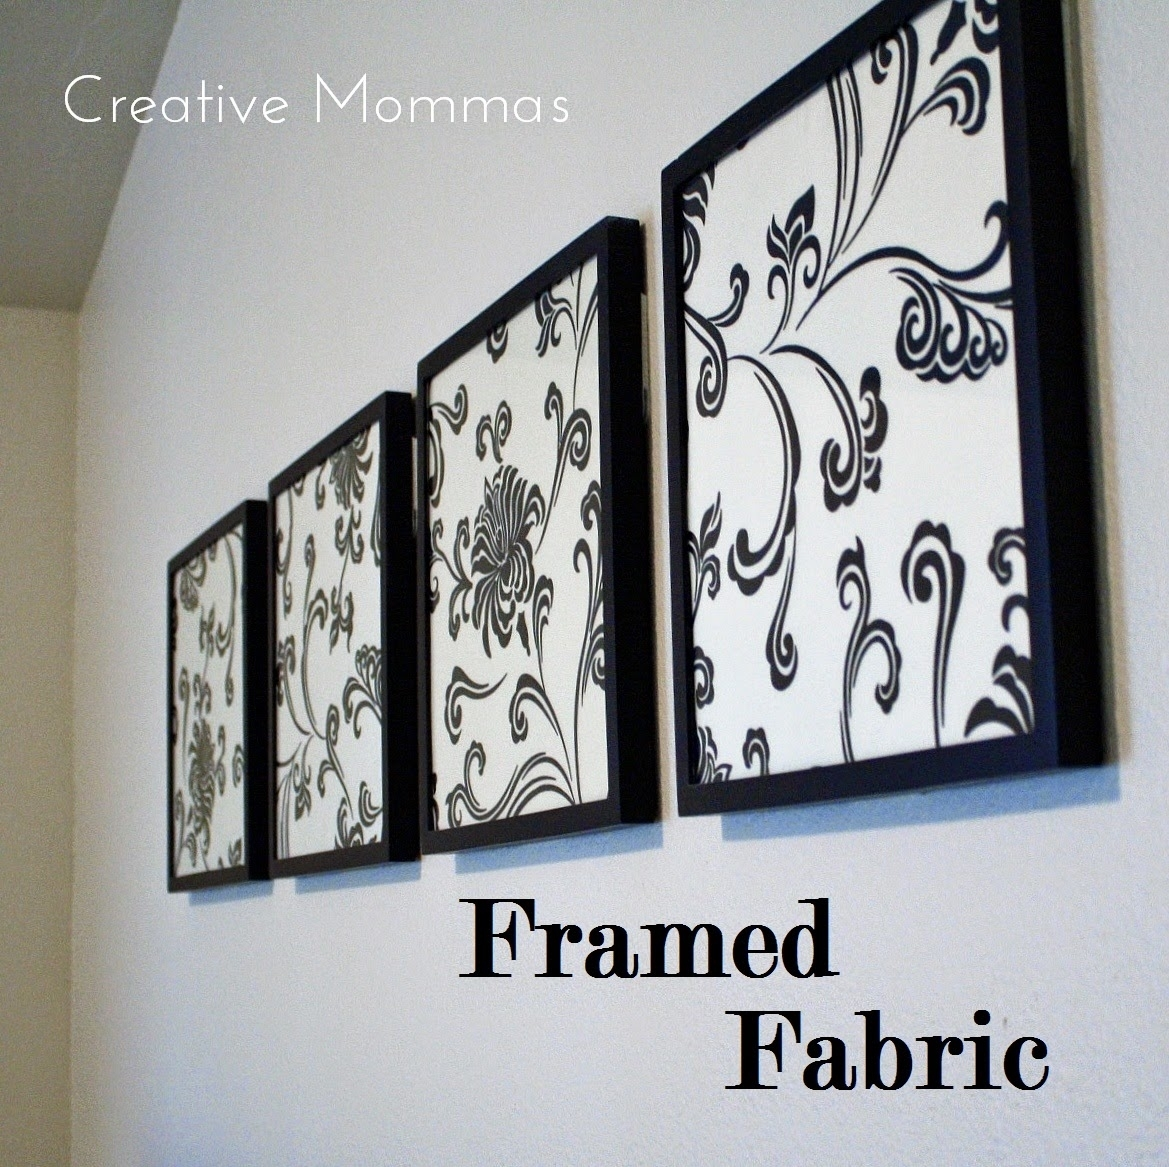 Creative Mommas: Framed Fabric Wall Decor Intended For Latest Iron Fabric Wall Art (Gallery 1 of 15)